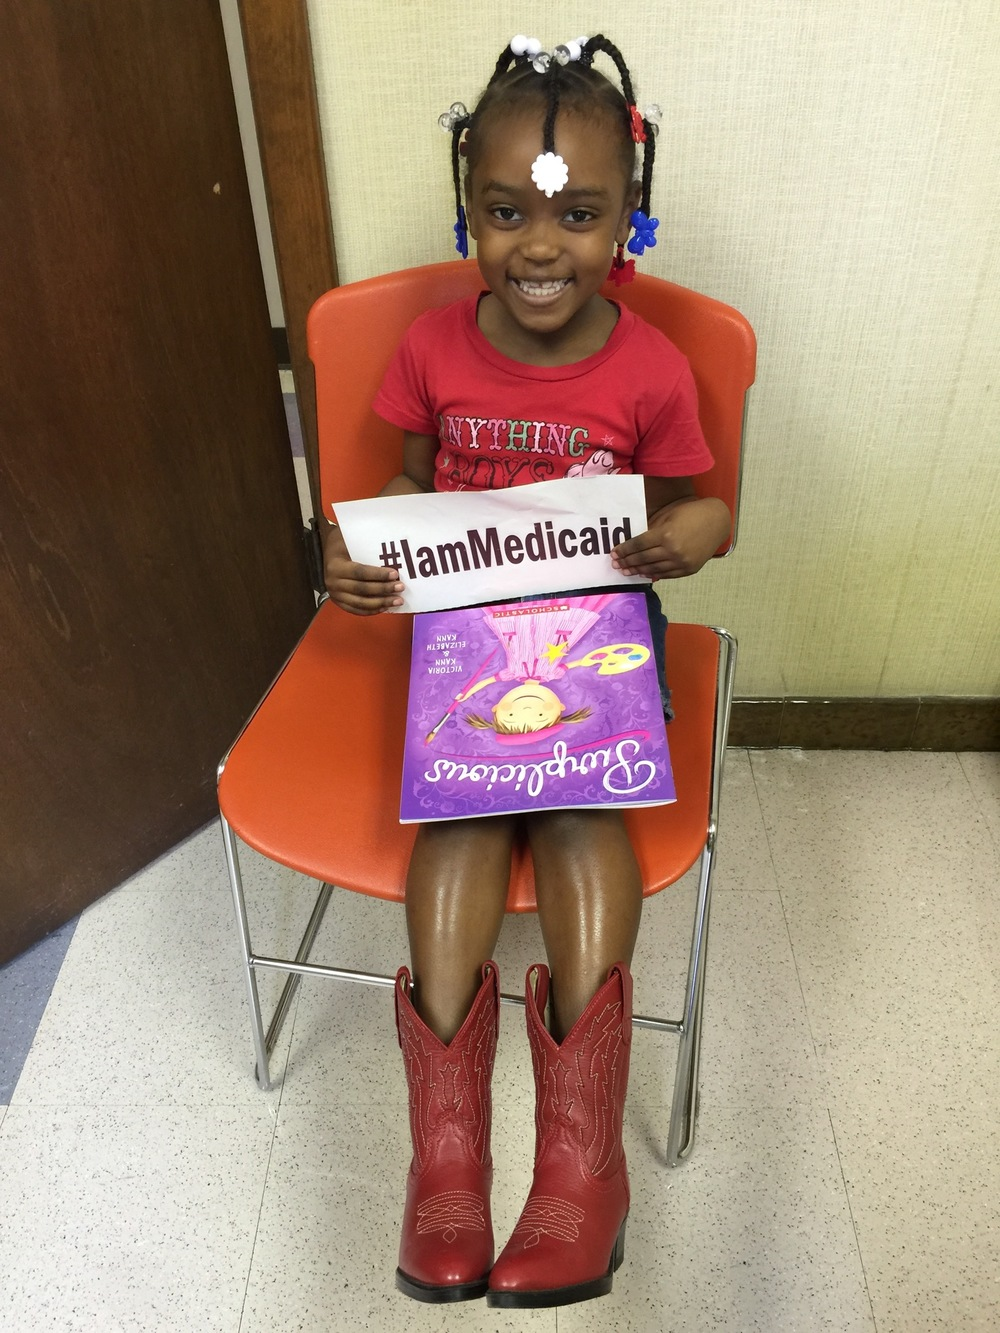 I have asthma. Last week I had an attack I had to use my inhalers and some icky steroid. I'm much better and can smile. Thanks Medicaid! ‪#‎IamMedicaid